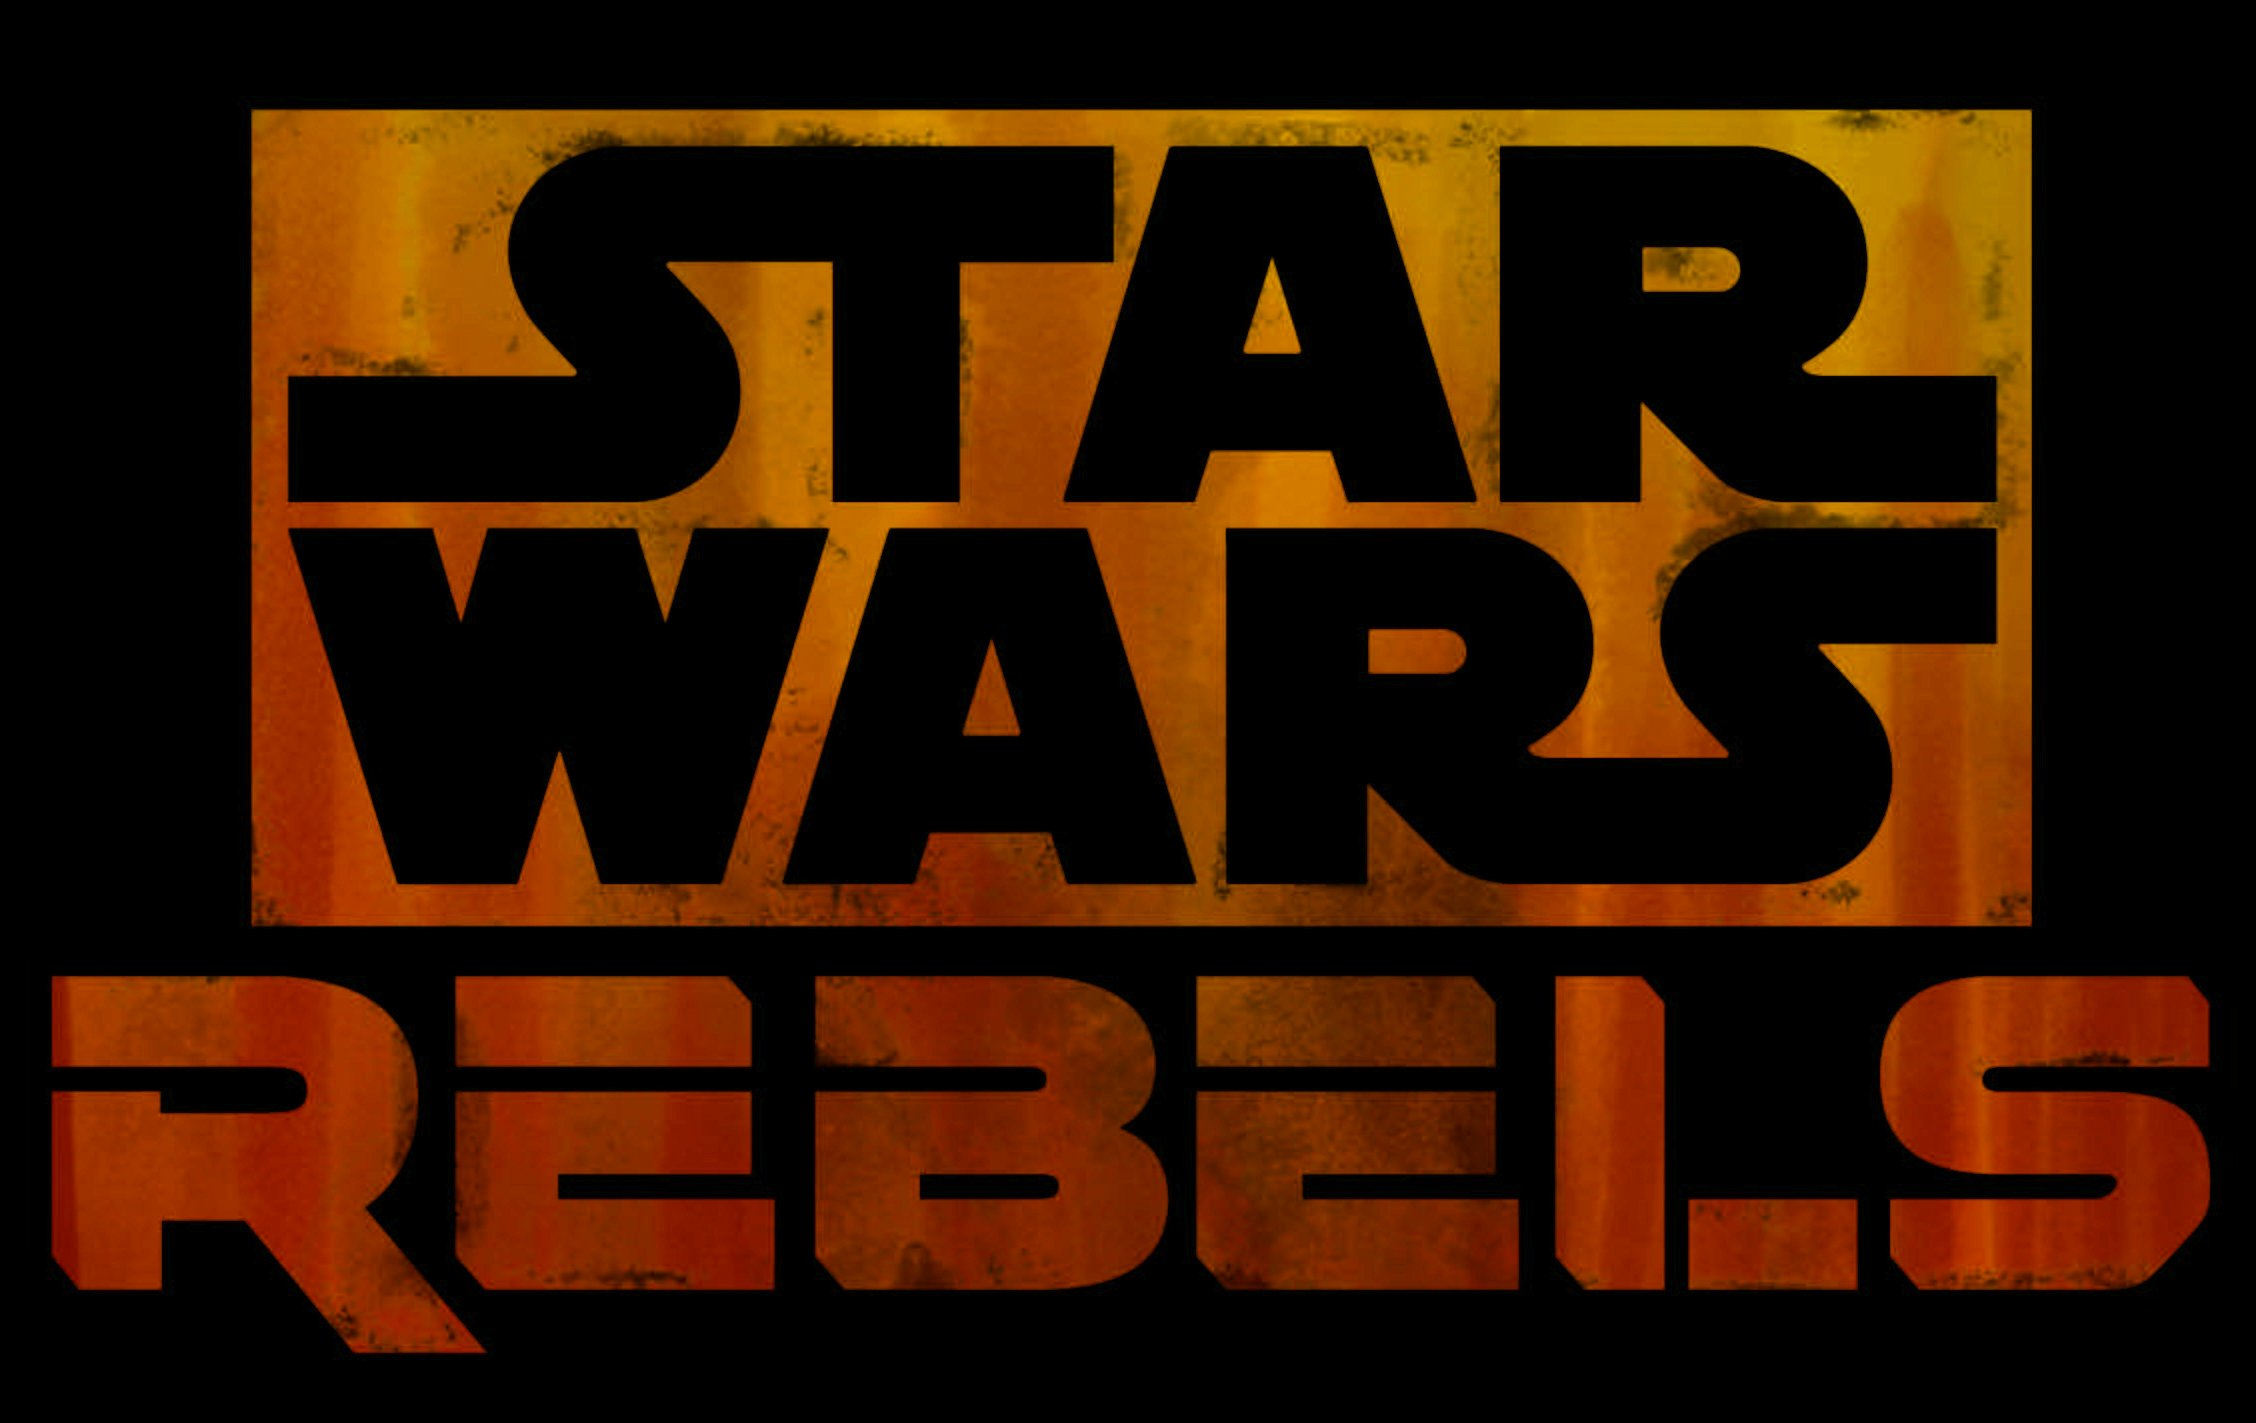 Star Wars Rebels Logo Wallpaper 53698 MOVIEWEB